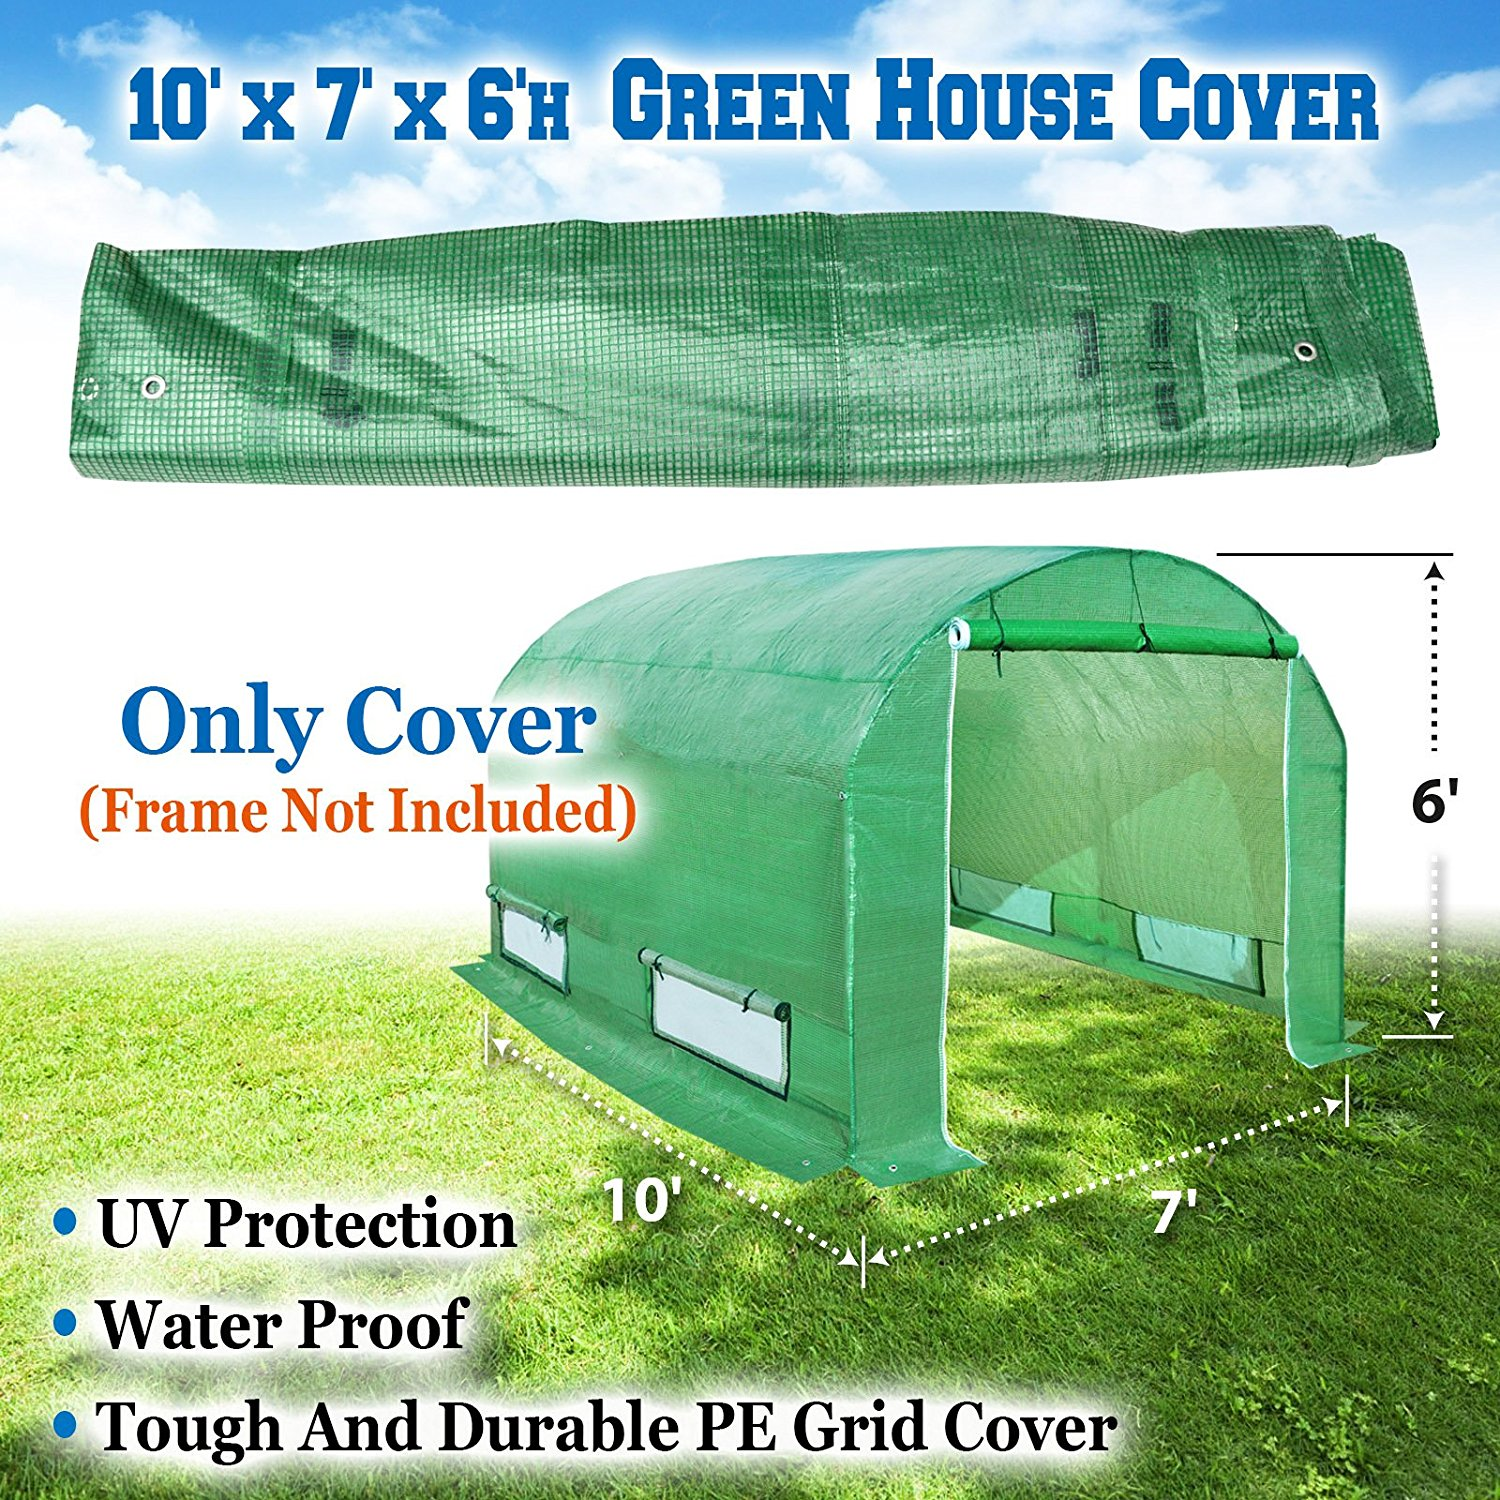 BenefitUSA Green House Replacement Spare Parts for 10'X7'X6'H Walk In Outdoor Plant Gardening Greenhouse (cover) by Sunny Outdoor Inc